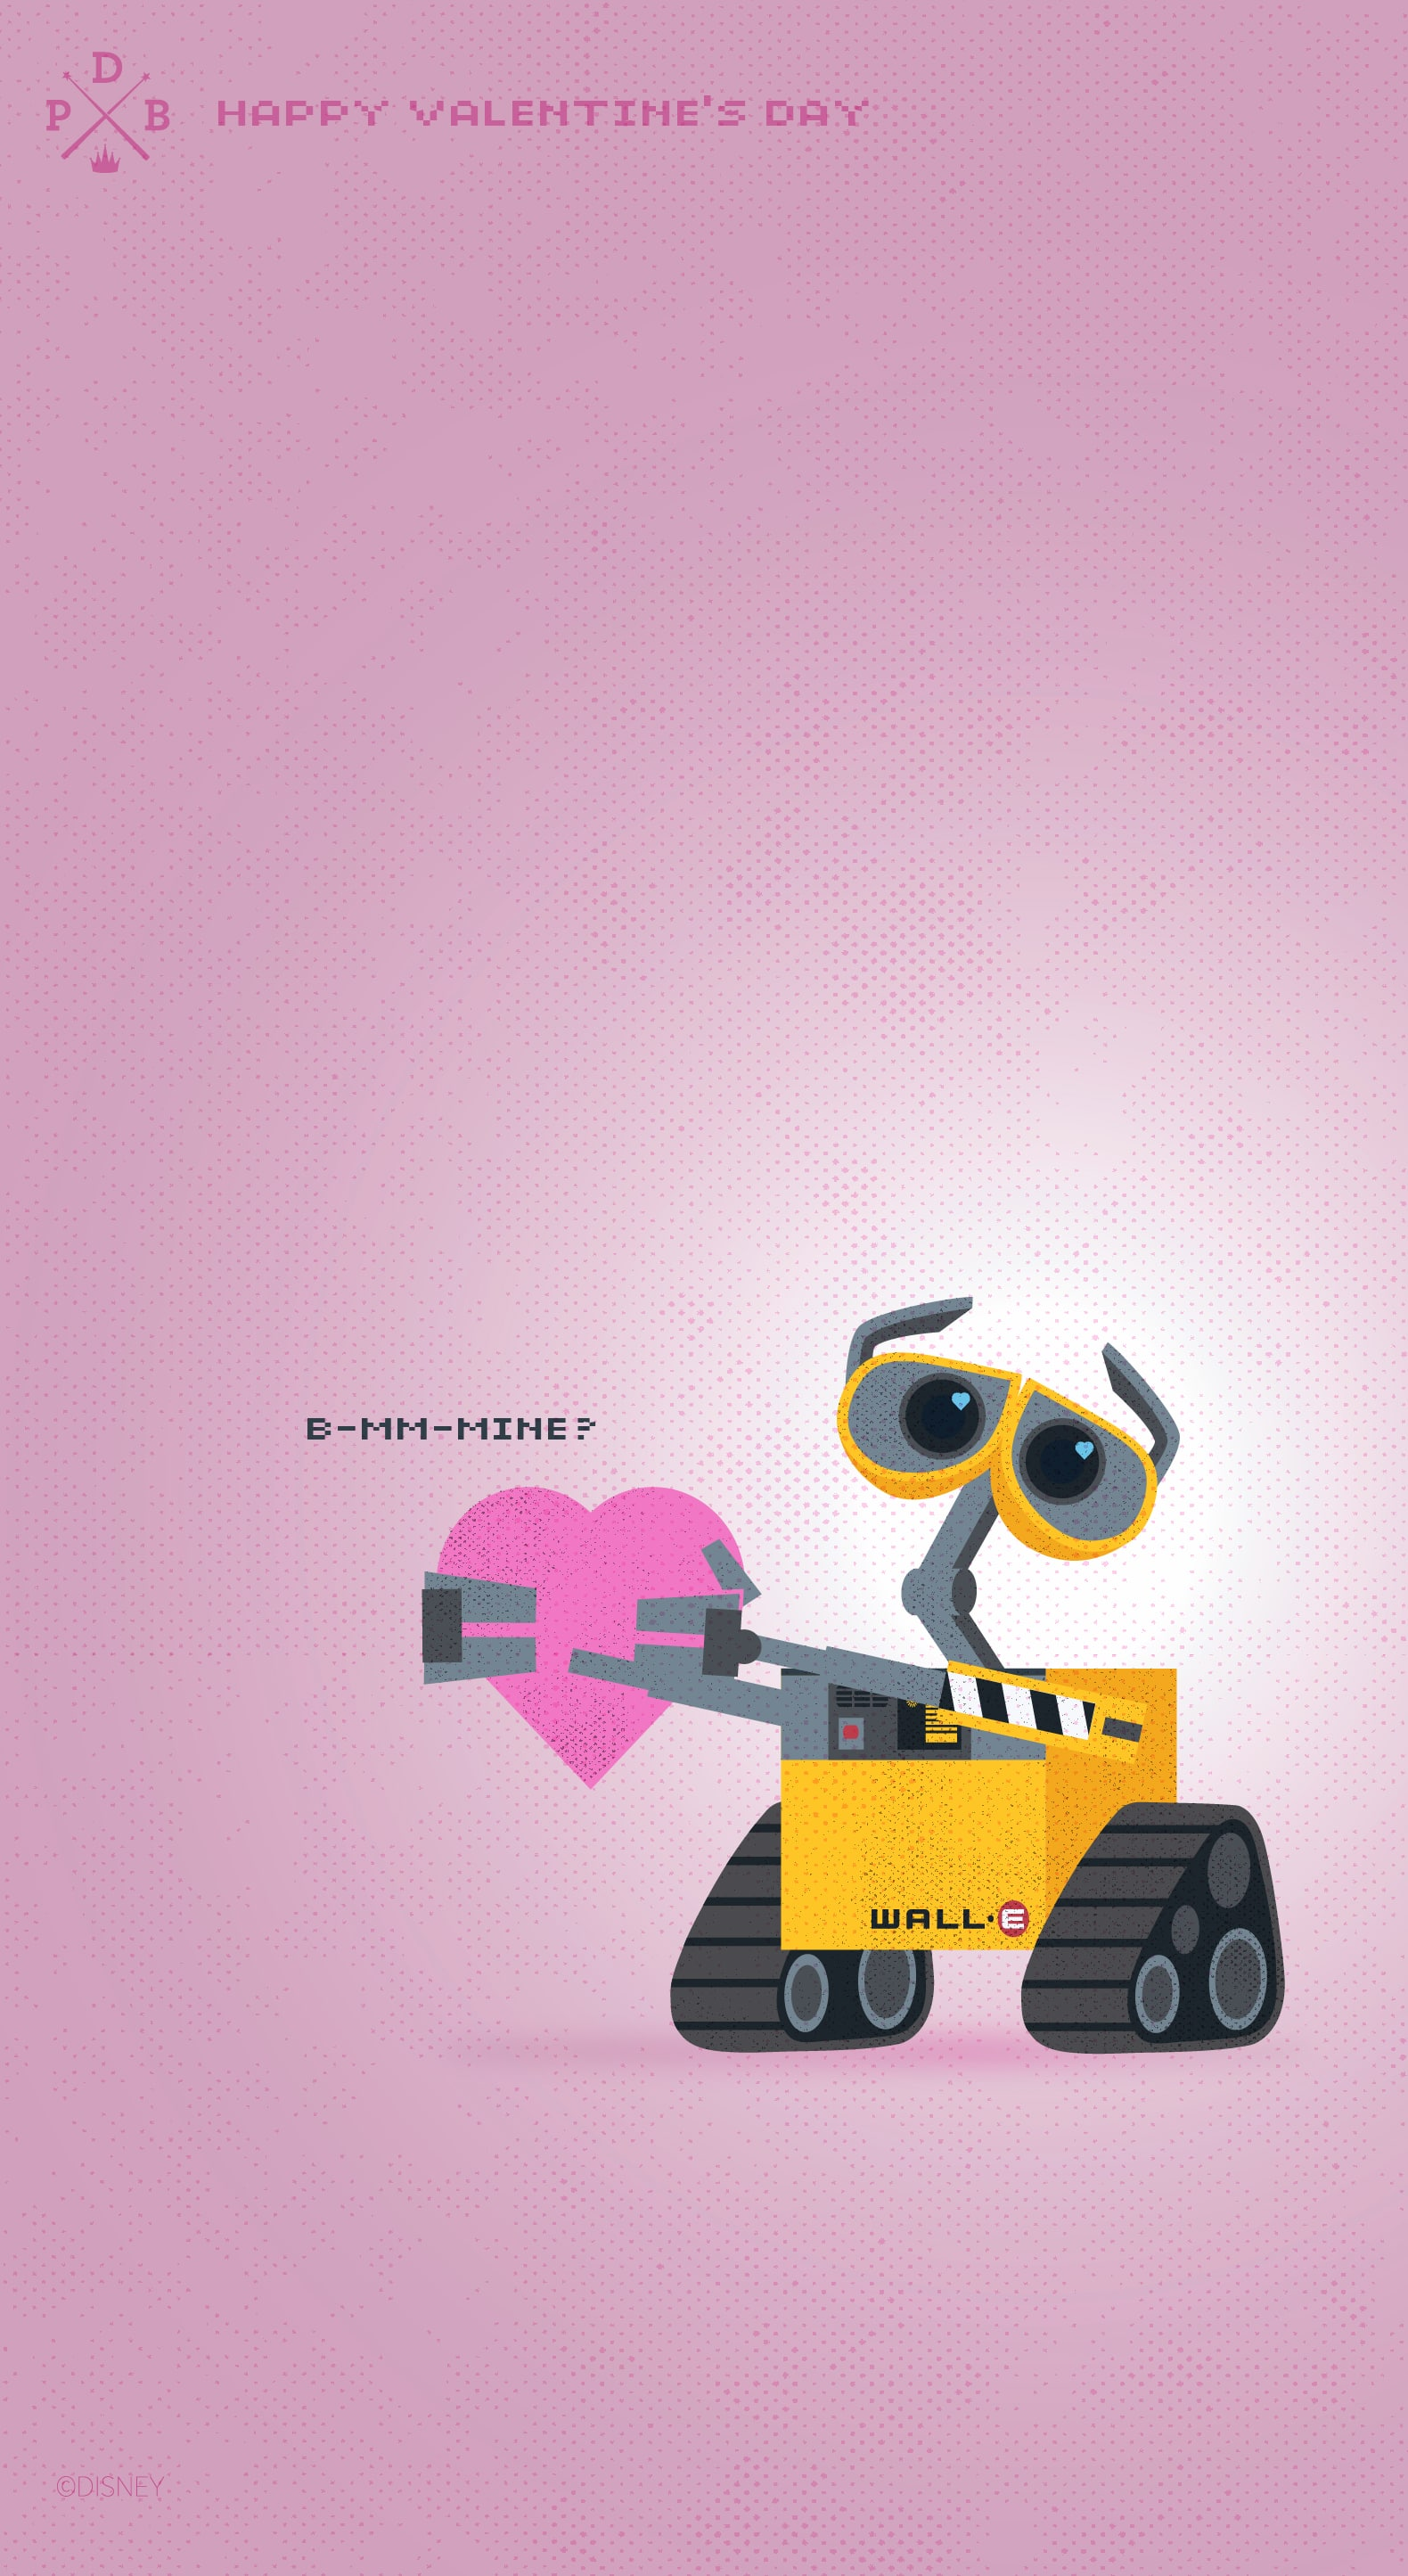 Celebrate Valentine S Day With Wall E Wallpaper Iphone Android Disney Parks Blog